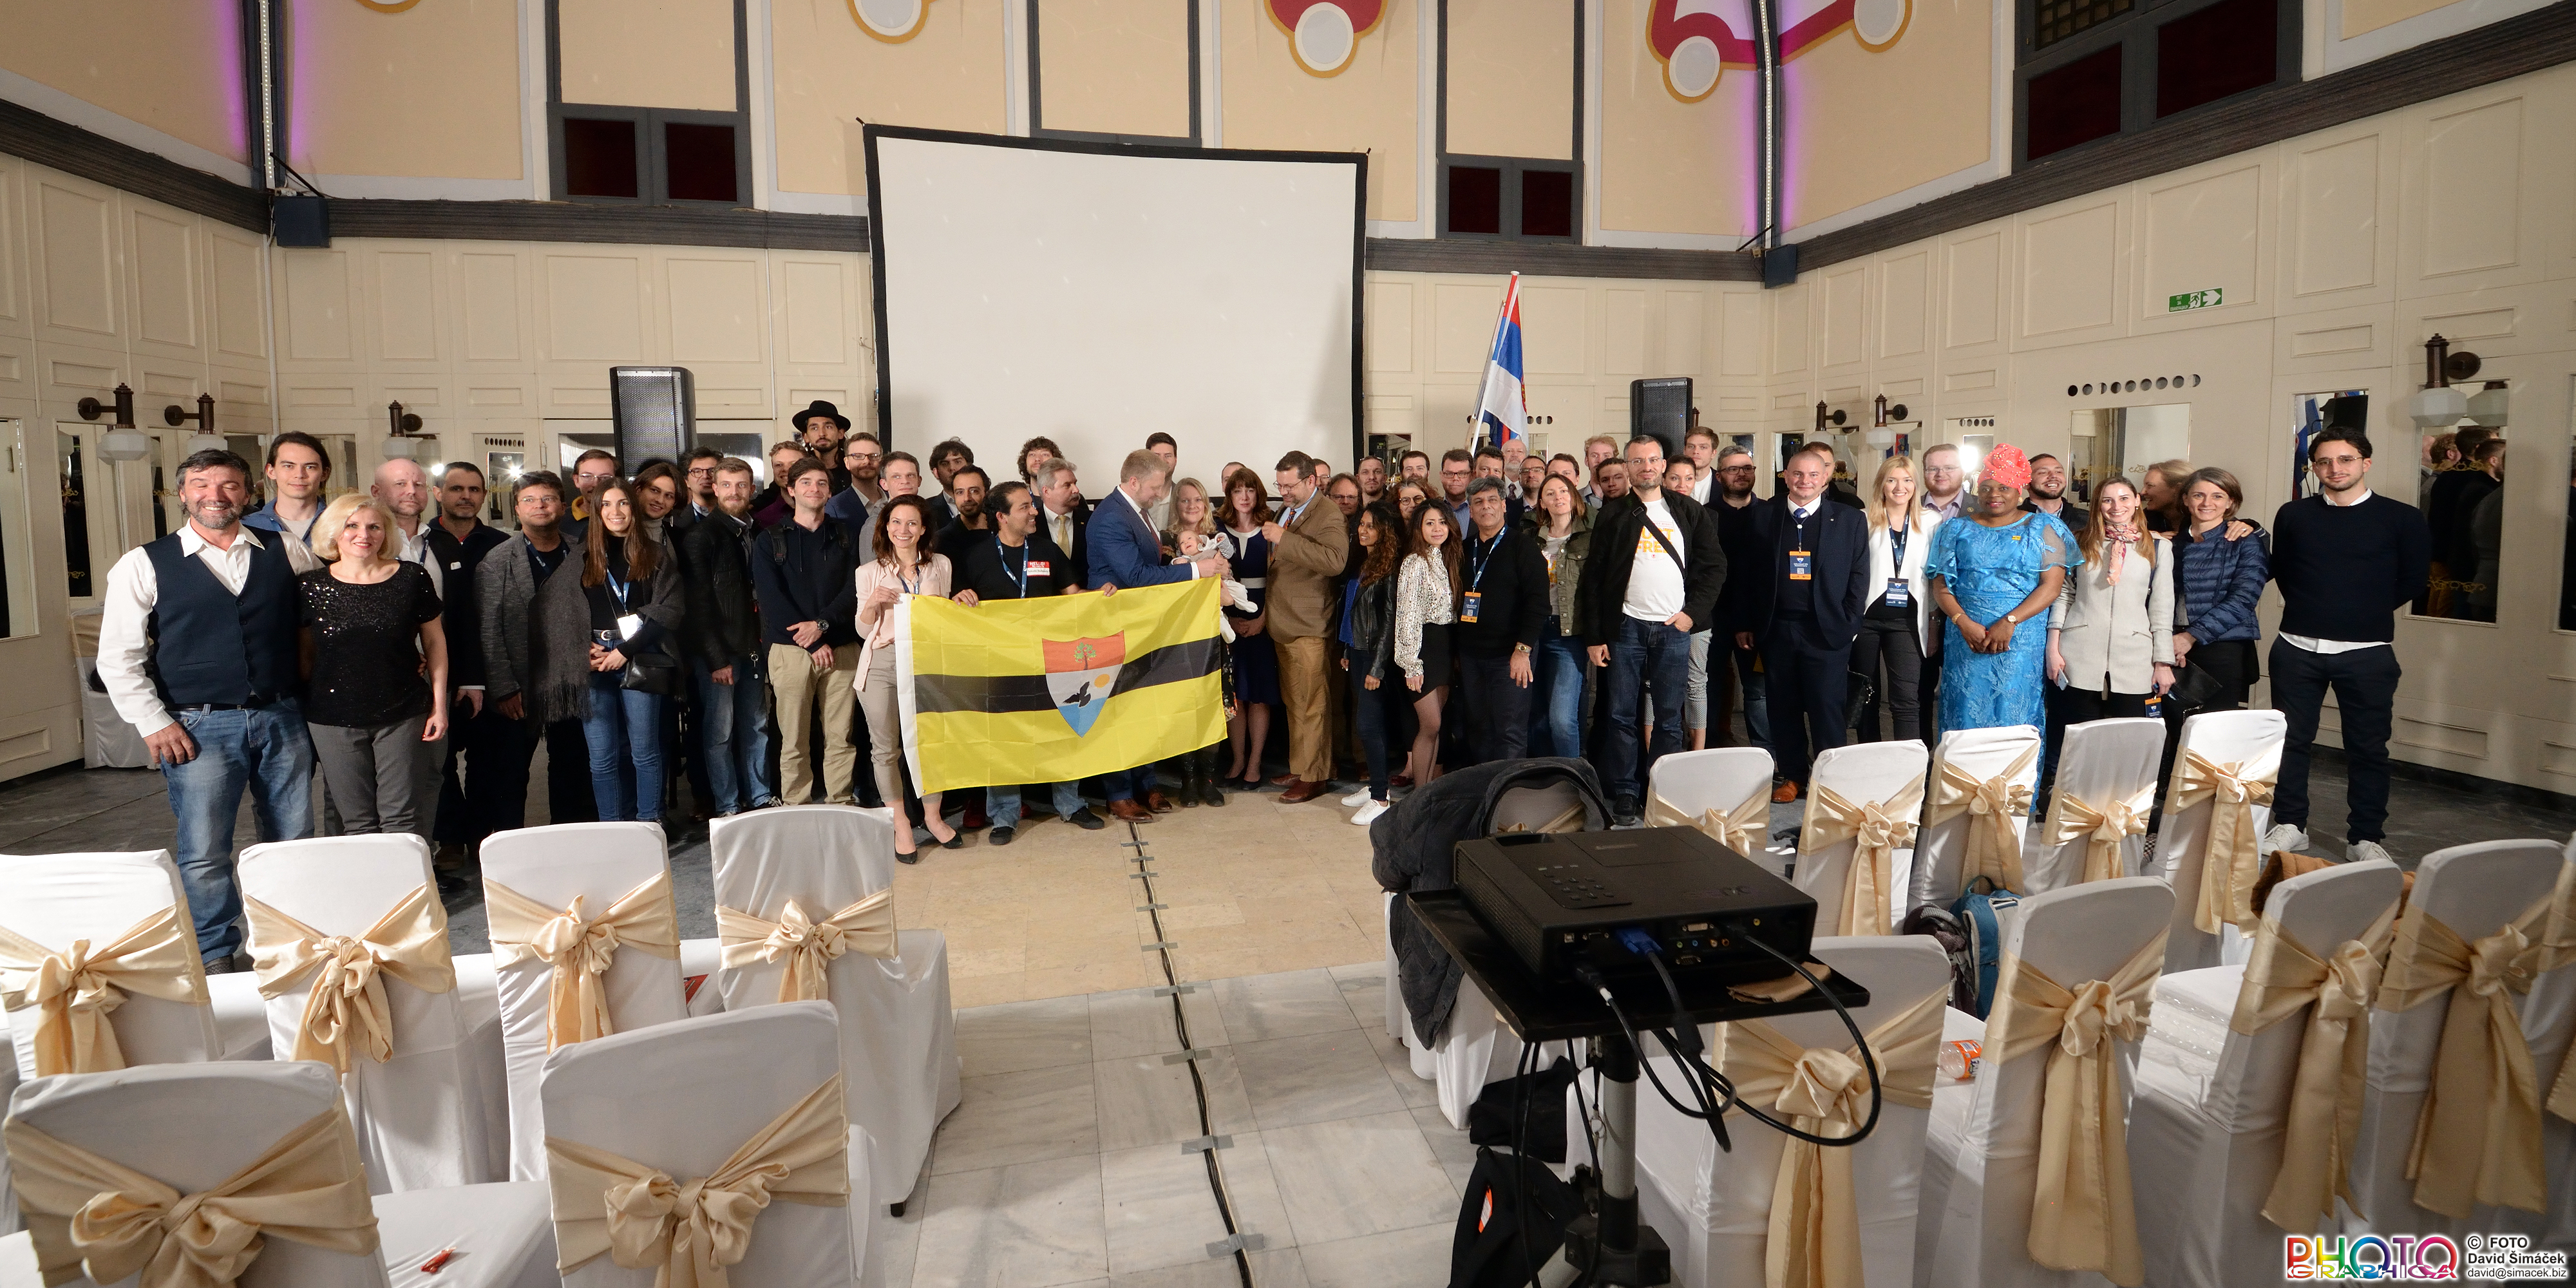 Liberland's Fourth Anniversary Celebration: A Success!